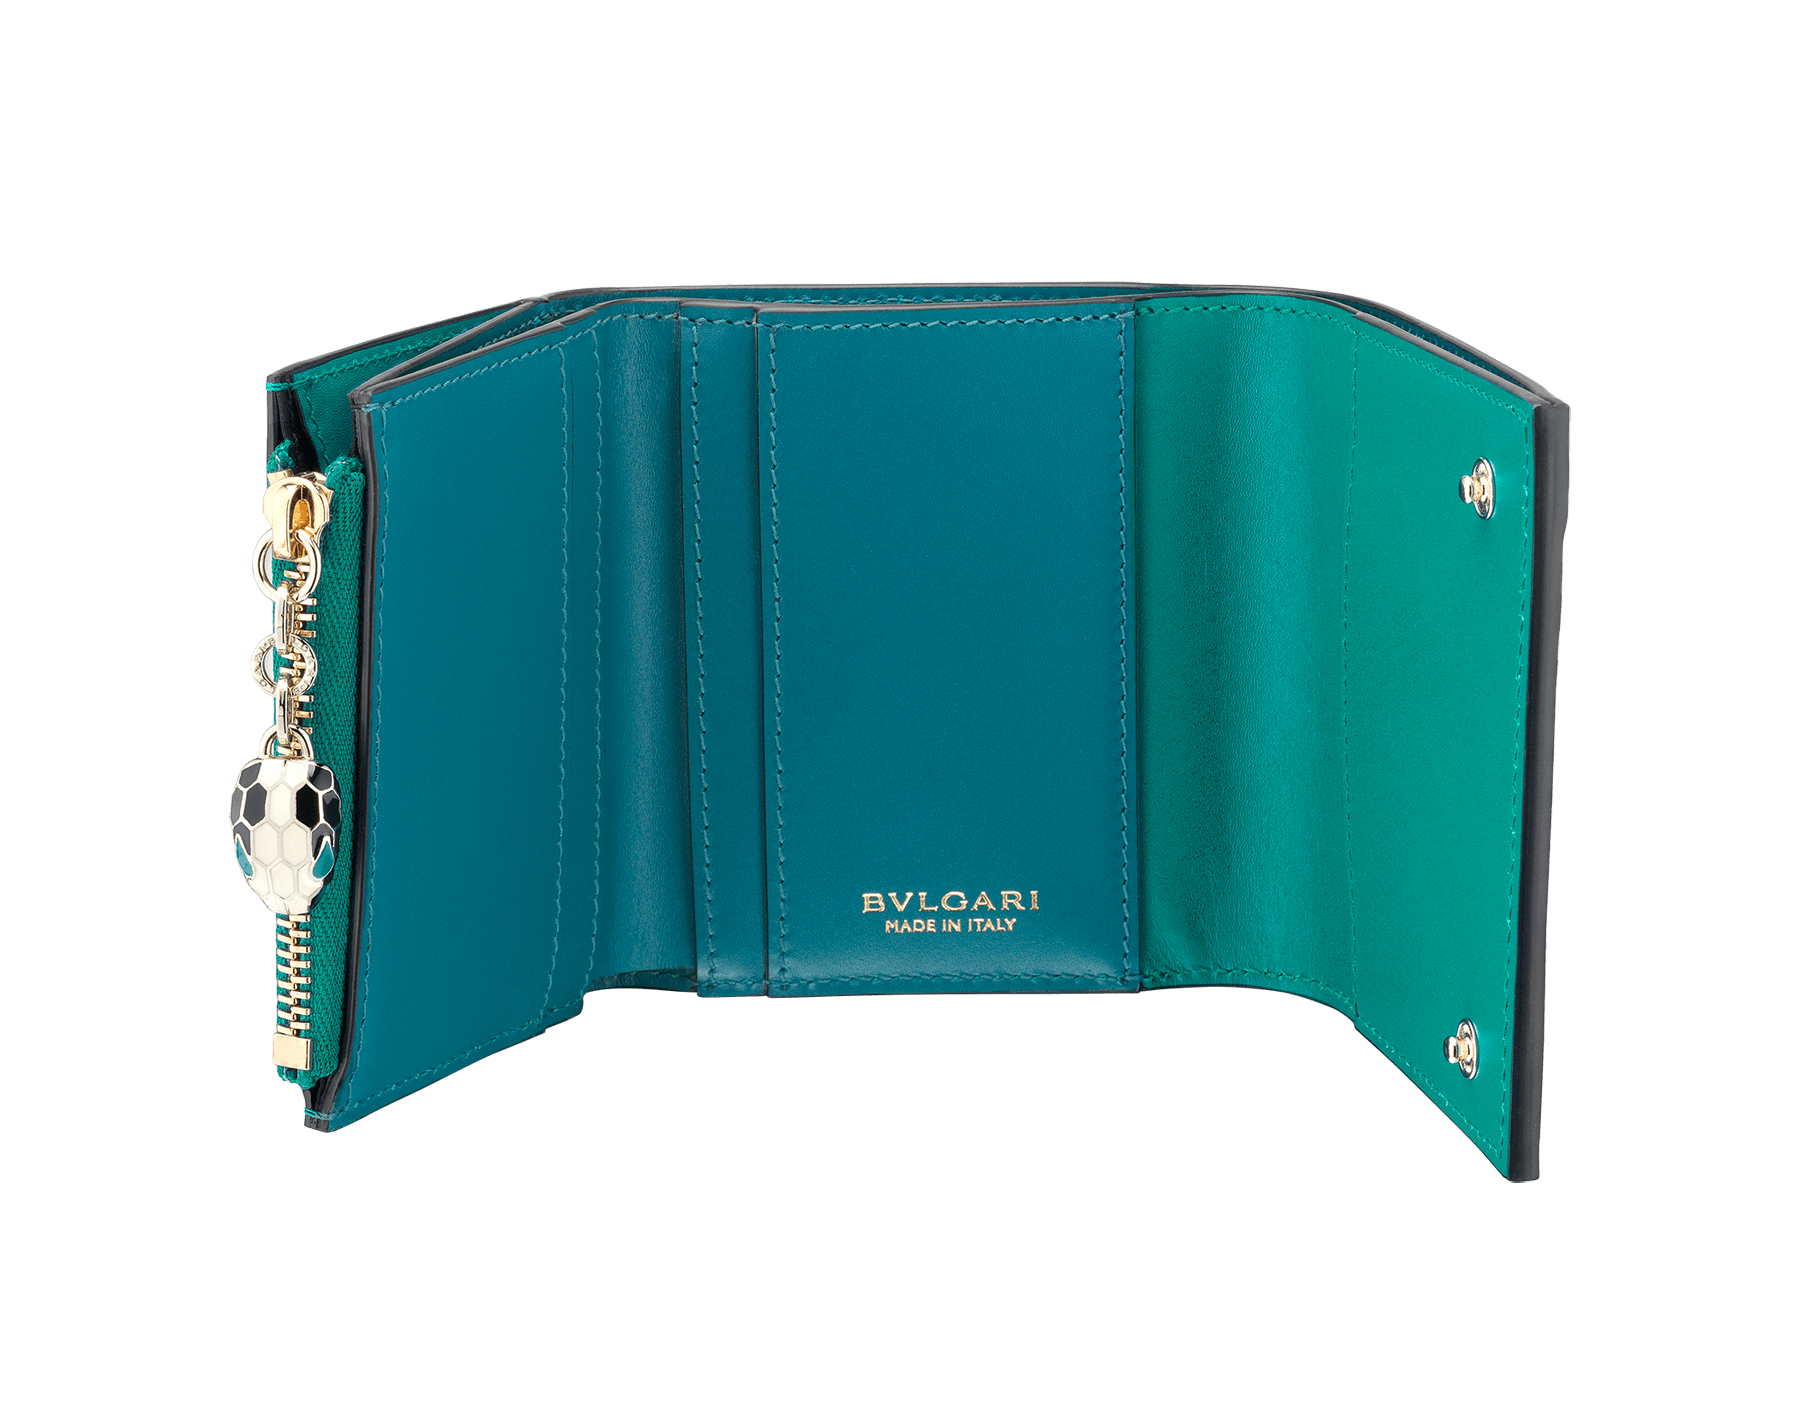 Serpenti Forever super compact wallet in tropical tourquoise and deep jade calf leather. Iconic snakehead stud closure in black and white enamel, with green malachite enamel eyes. 288038 image 2